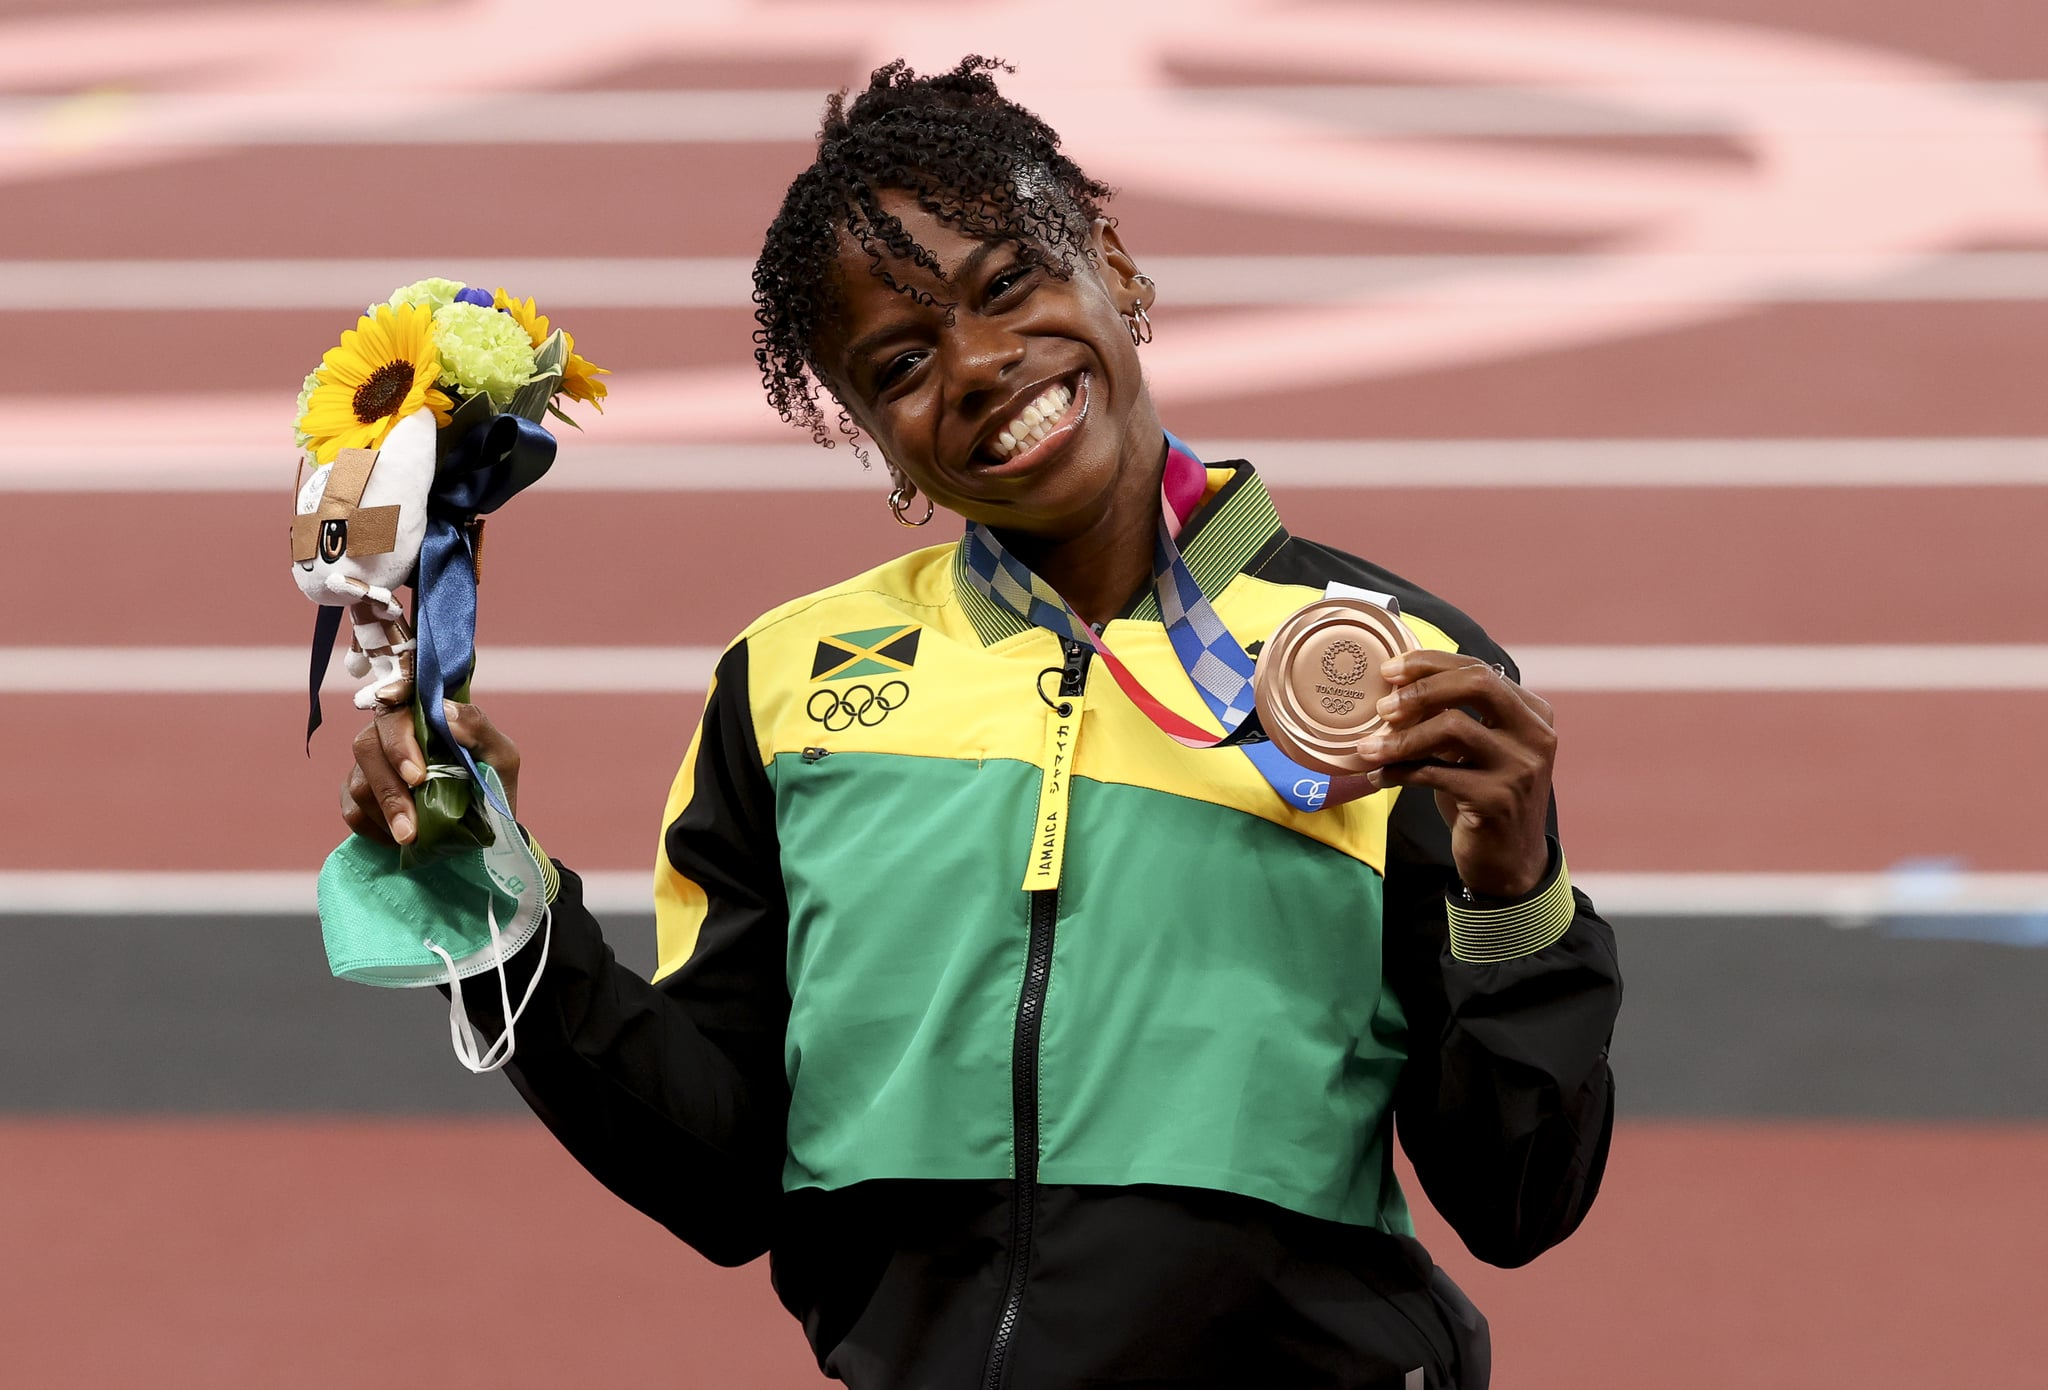 TOKYO, JAPAN - AUGUST 2: Bronze Medalist Megan Tapper of Jamaica during the medal ceremony of the Women's 100m Hurdles on day ten of the athletics events of the Tokyo 2020 Olympic Games at Olympic Stadium on August 2, 2021 in Tokyo, Japan. (Photo by Jean Catuffe/Getty Images)